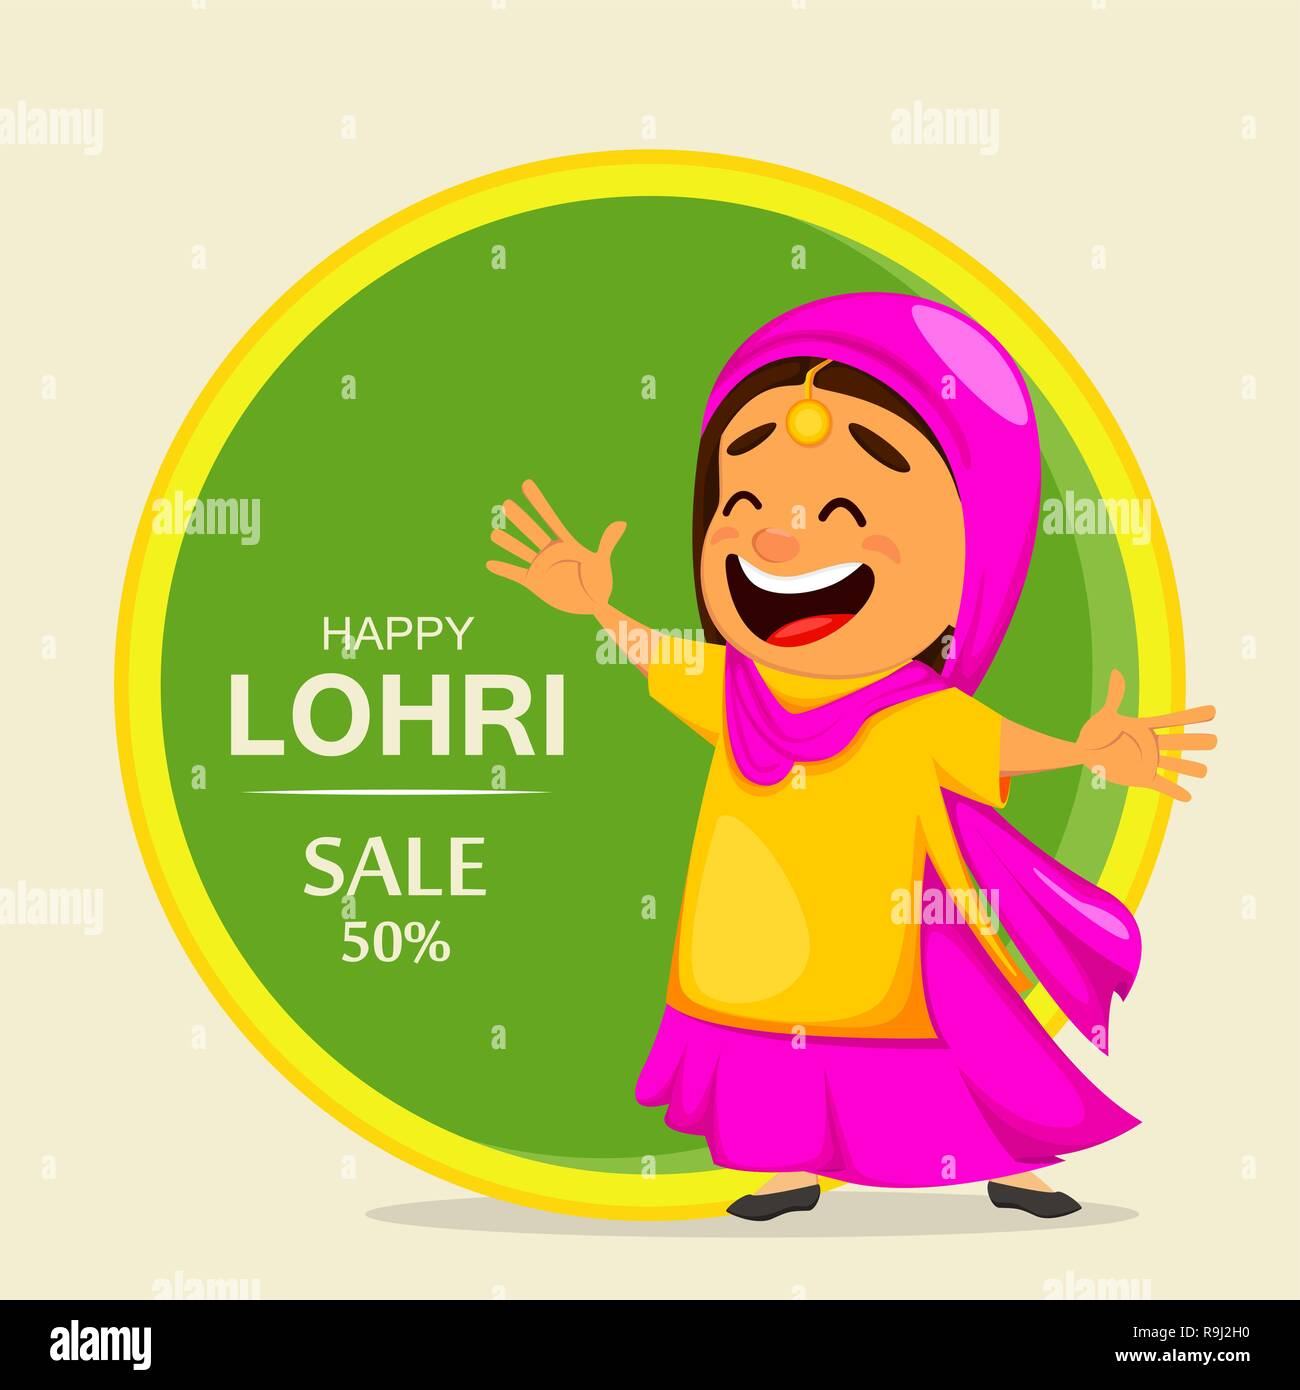 Popular winter Punjabi folk festival Lohri. Funny Indian woman celebrating holiday. Cartoon character dancing. Vector illustration for sale - Stock Vector